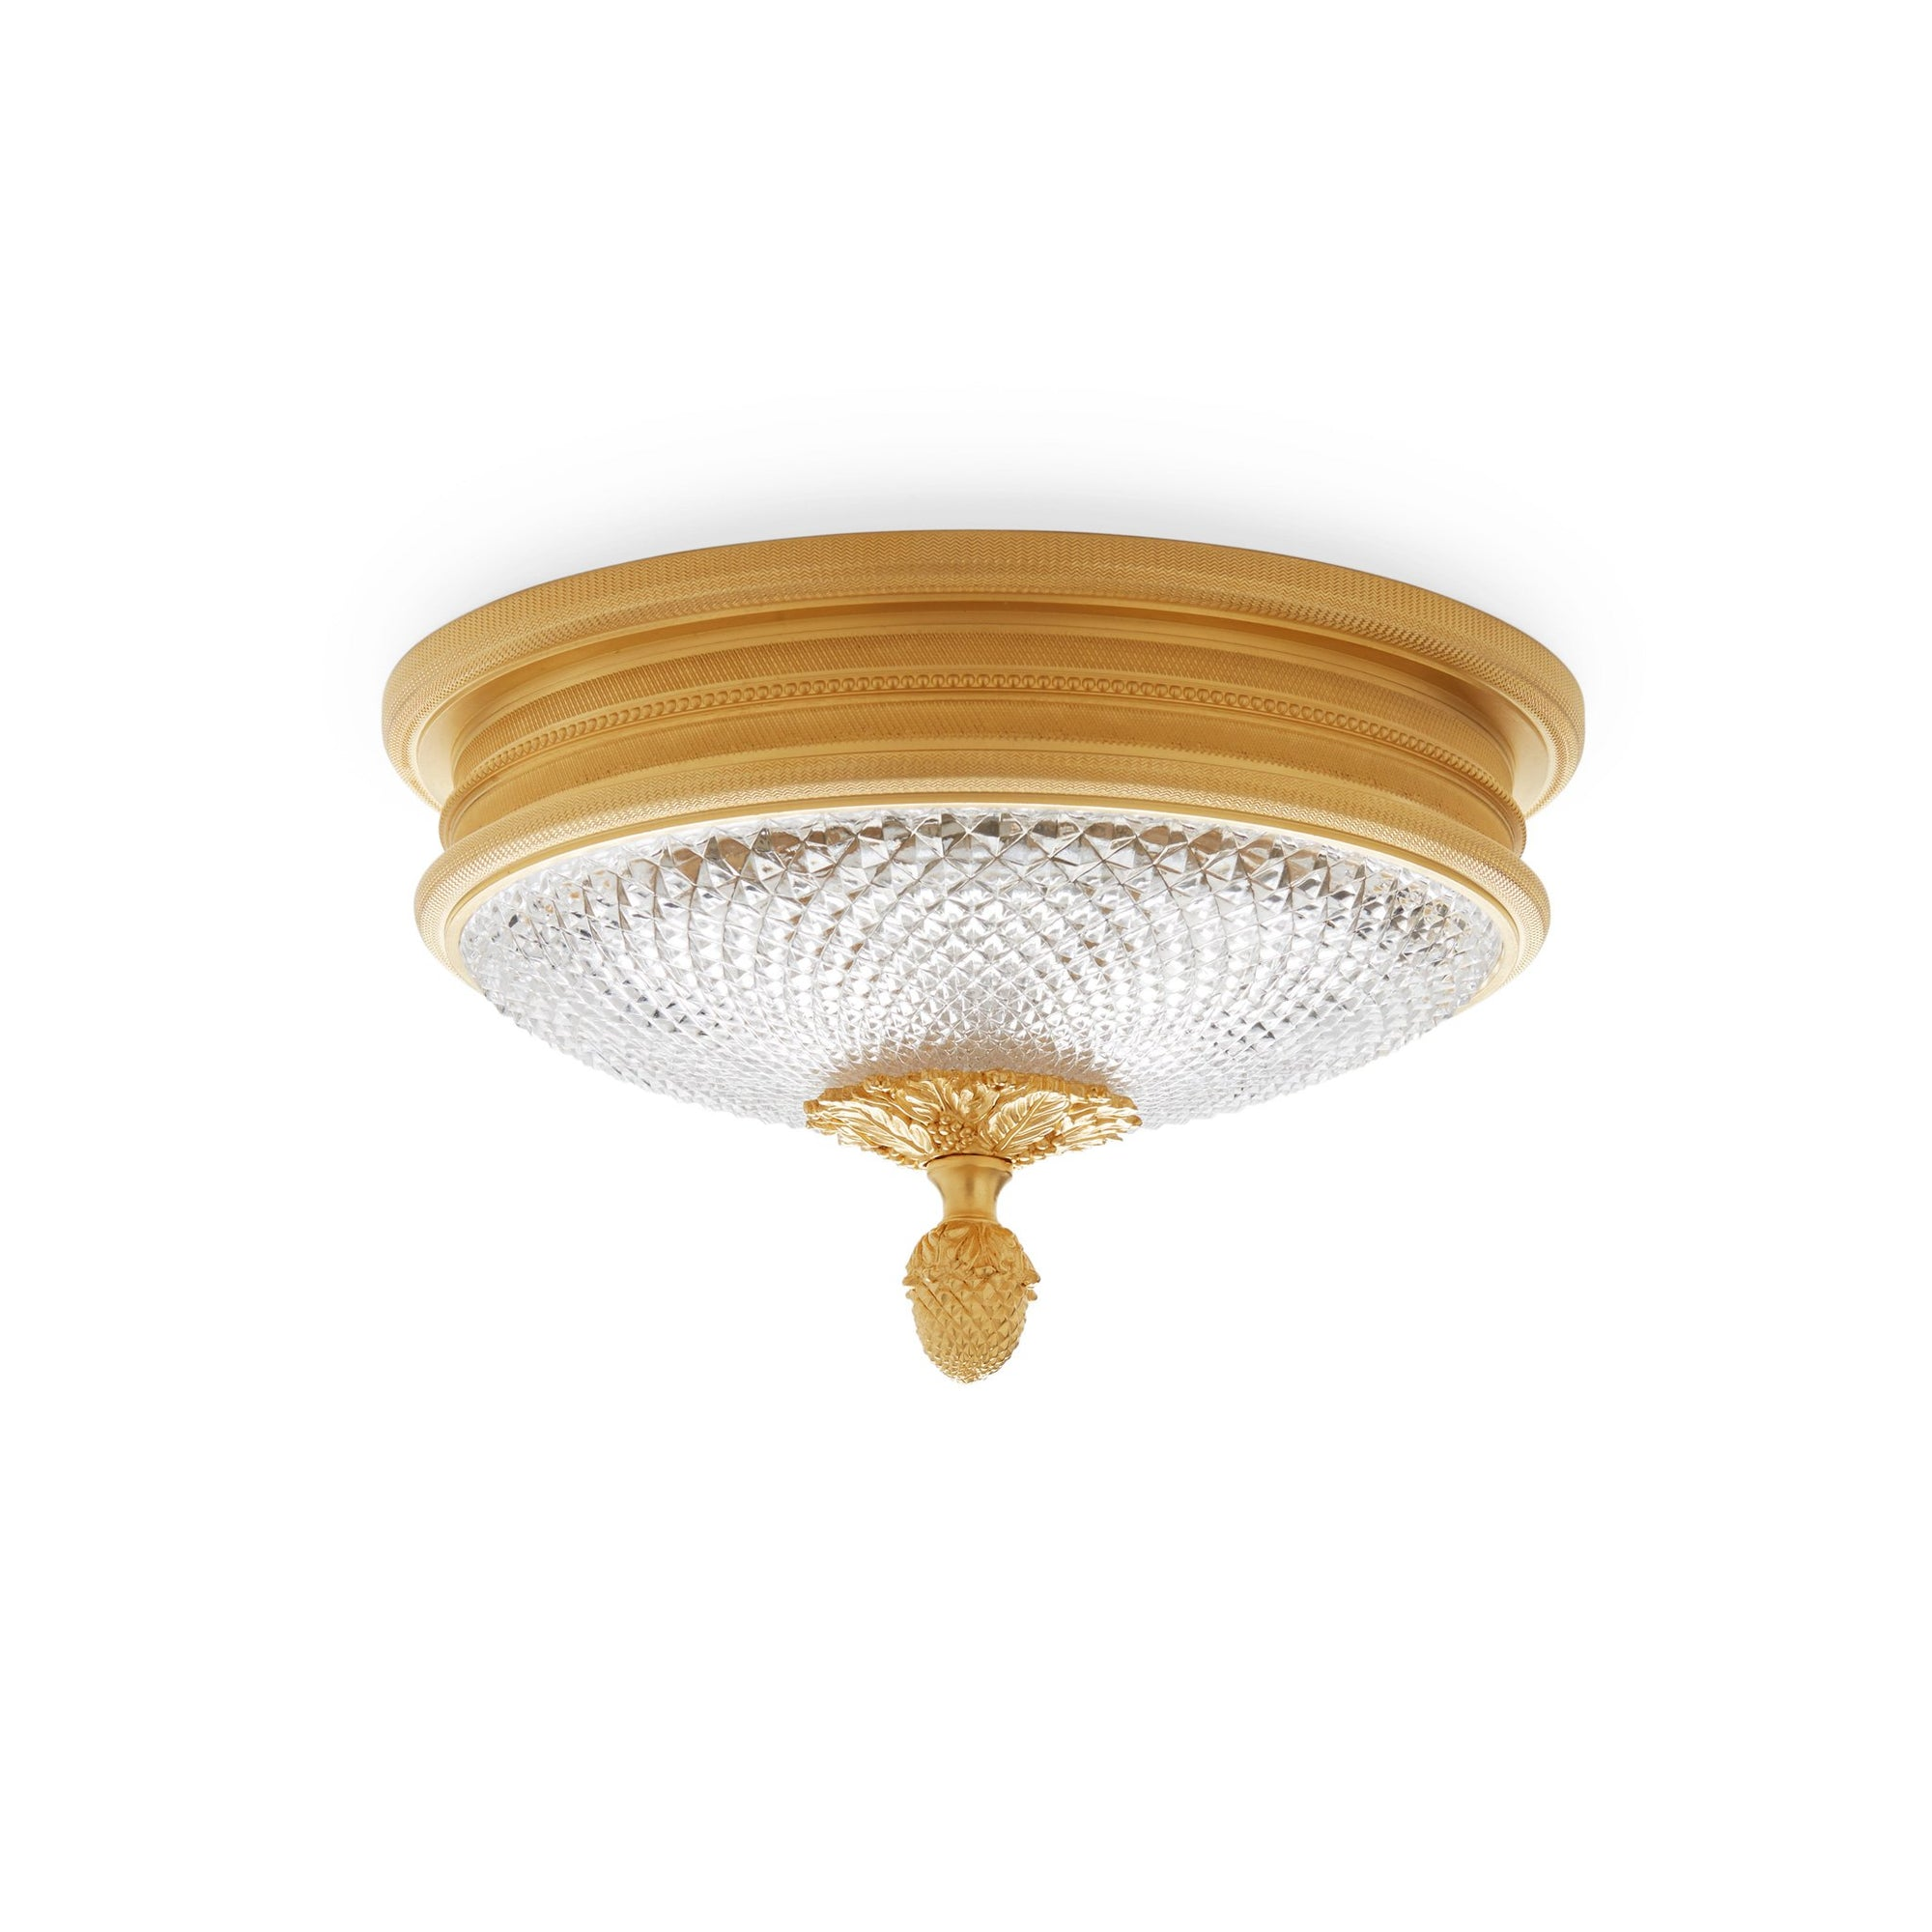 7132-GP Sherle Wagner International Knurled Ceiling Light in Gold Plate metal finish